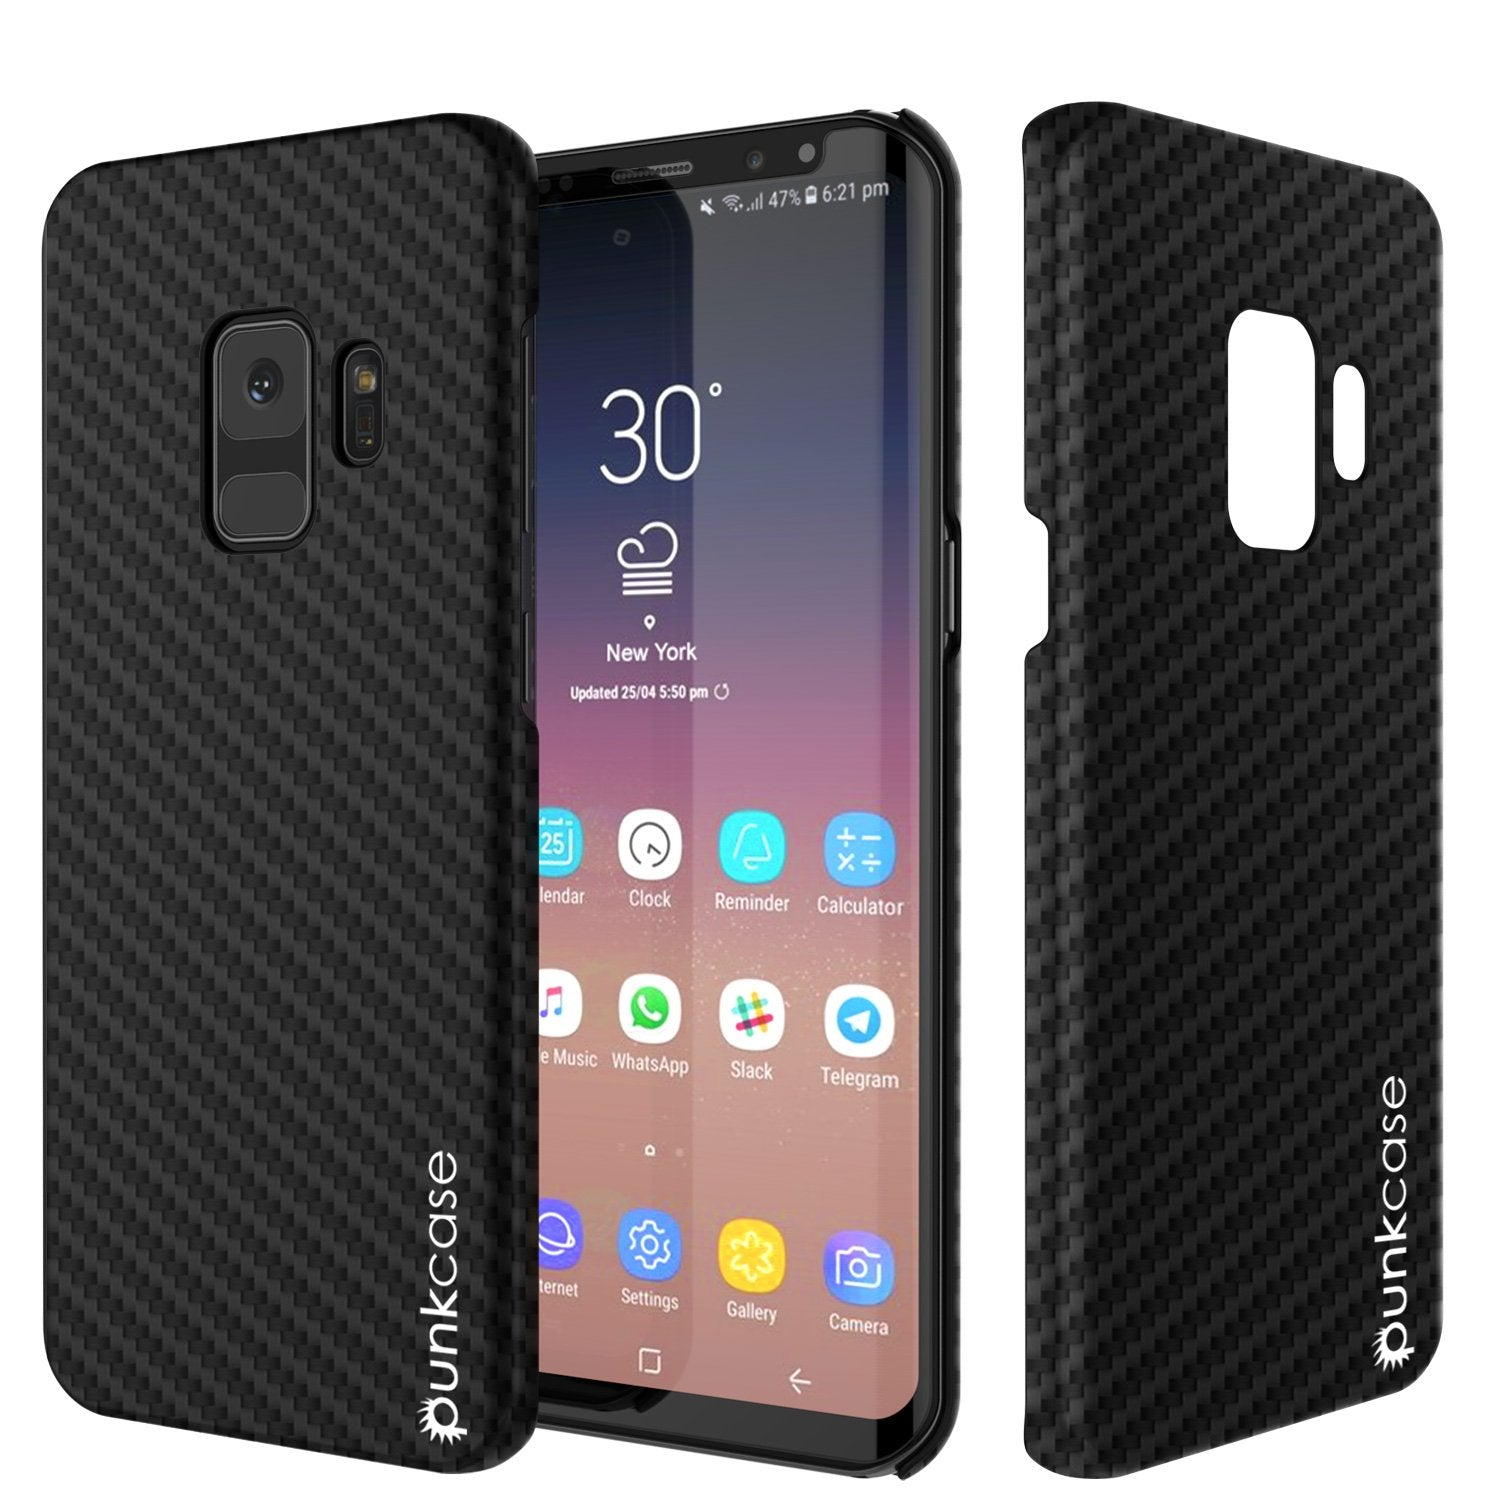 Galaxy S9 Case, Punkcase CarbonShield, Heavy Duty & Ultra Thin 2 Piece Dual Layer PU Leather Cover [shockproof][non slip] with PUNKSHIELD Screen Protector for Samsung S9 [jet black]